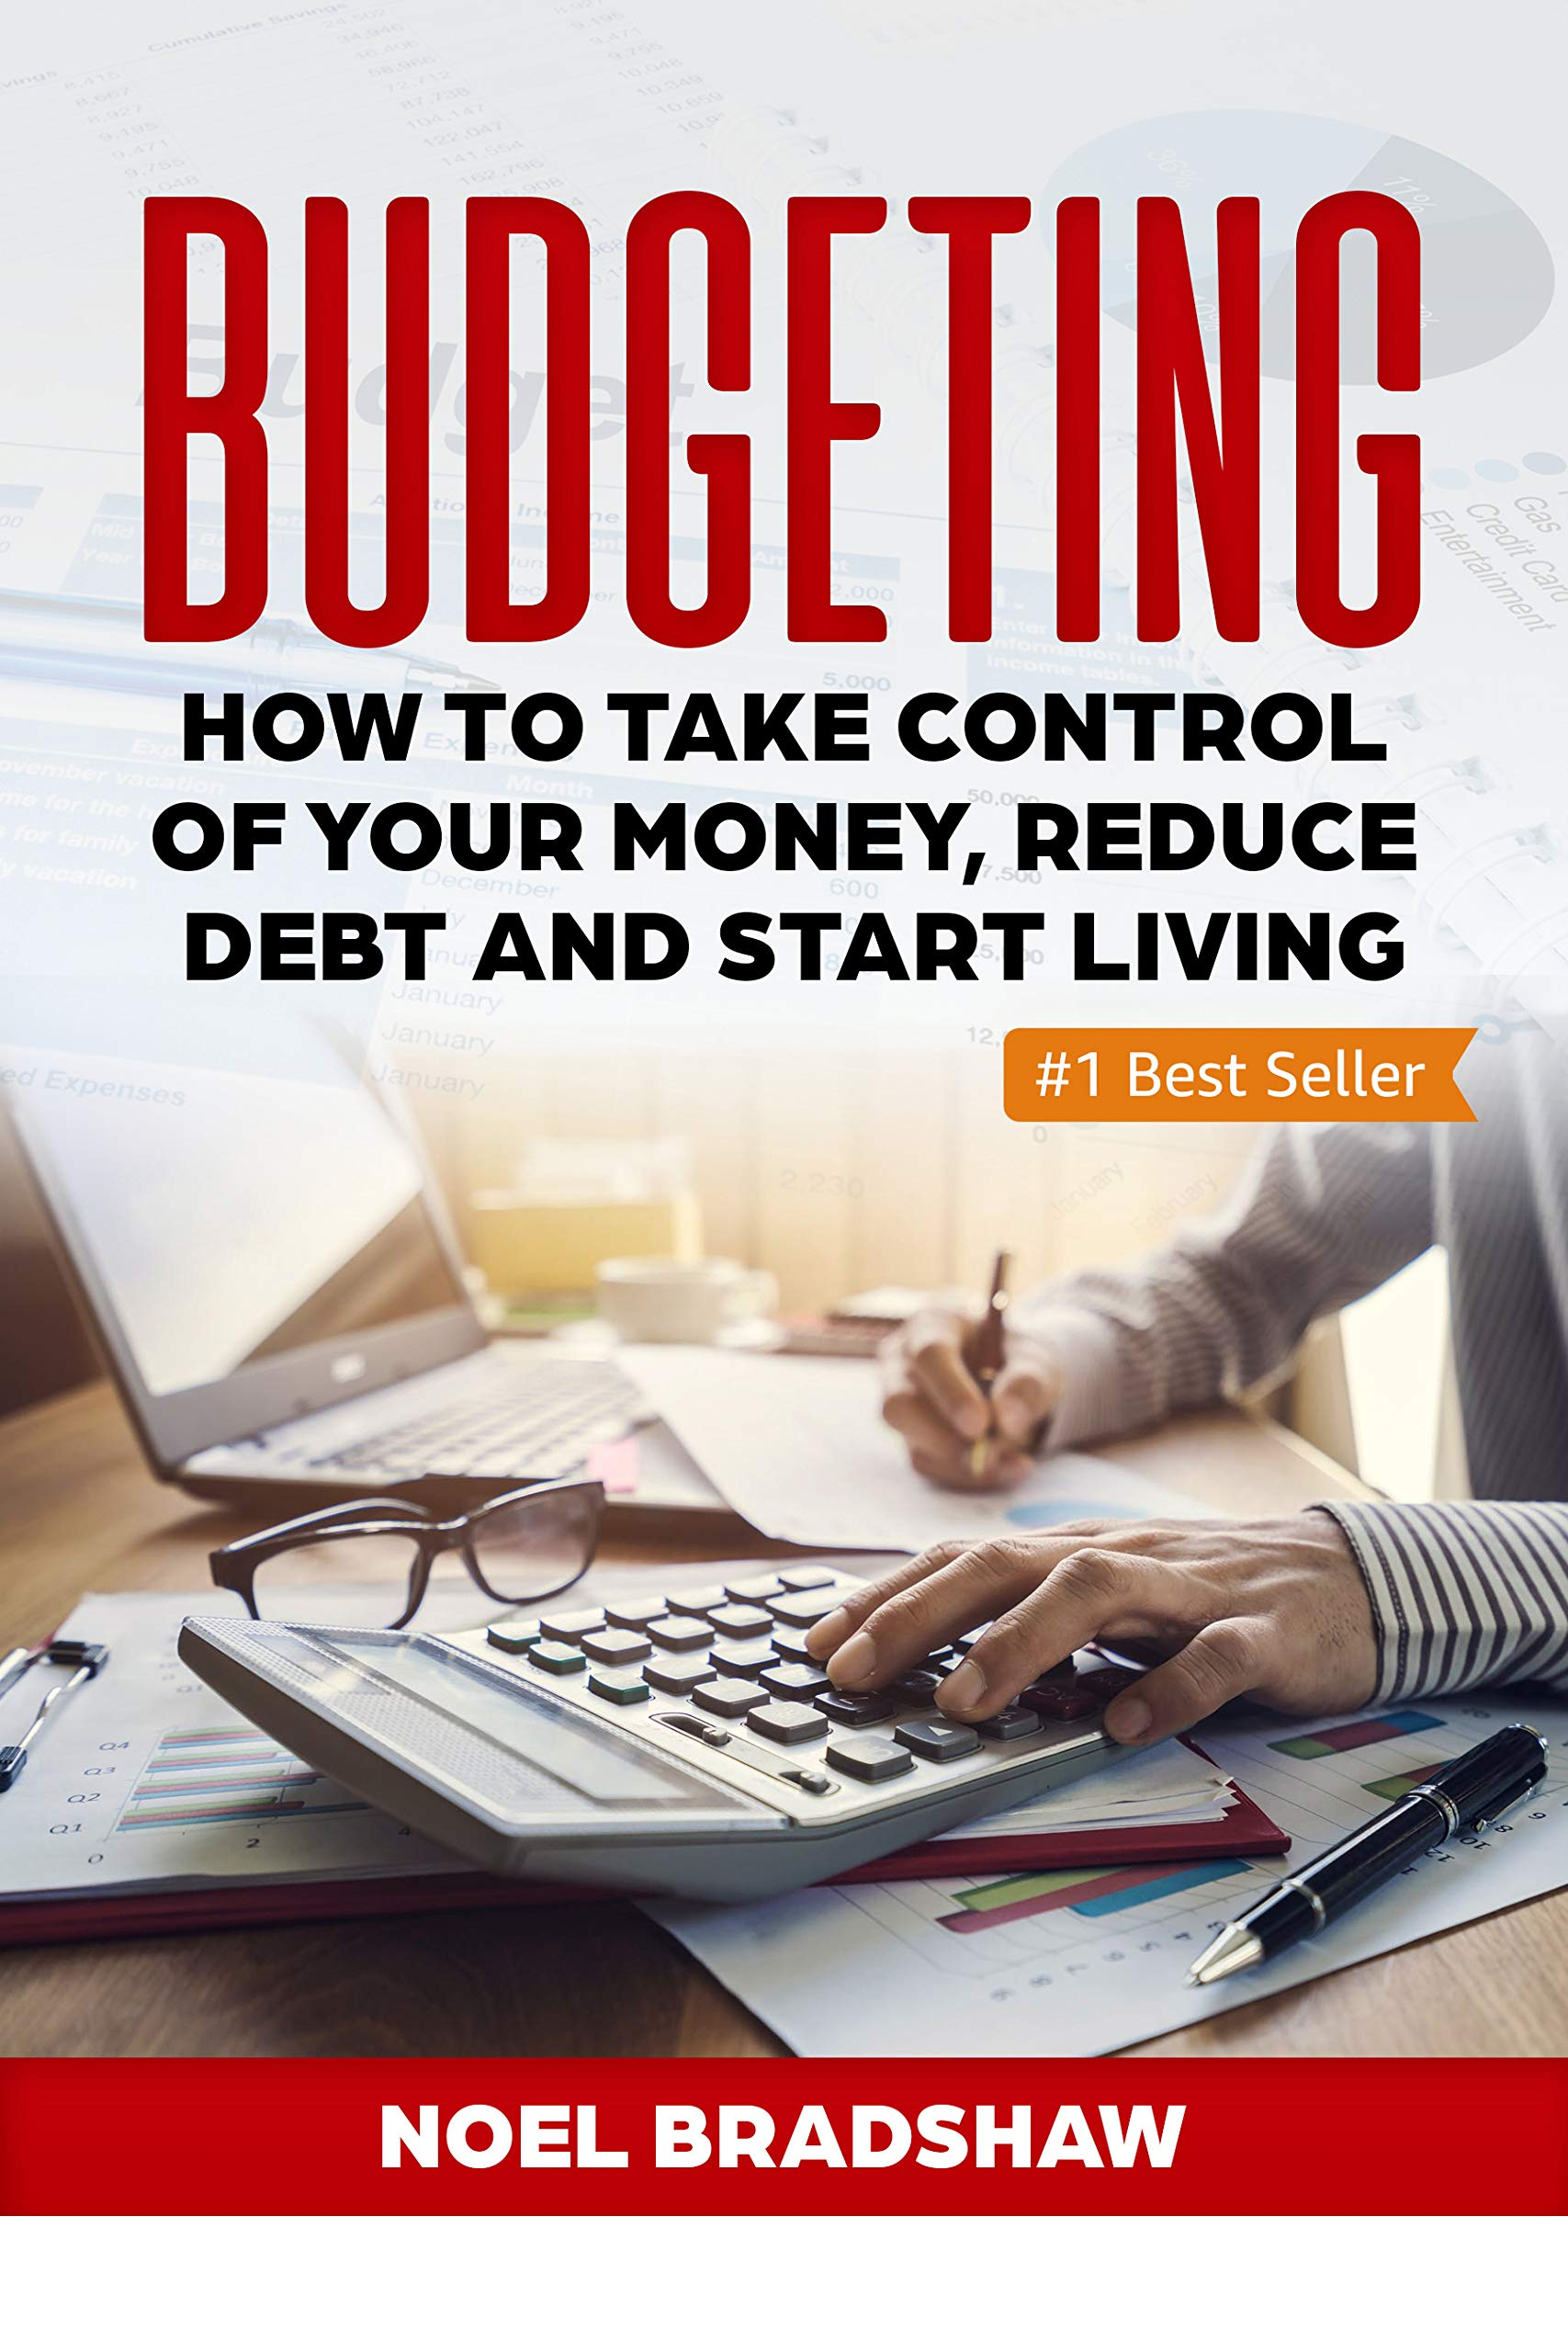 BUDGETING  How To Take Control Of Your Money Reduce Debt And Start Living  Budgeting Workbook Budgeting Notebook Budgeting For Beginners Budgeting And Forecasting   English Edition